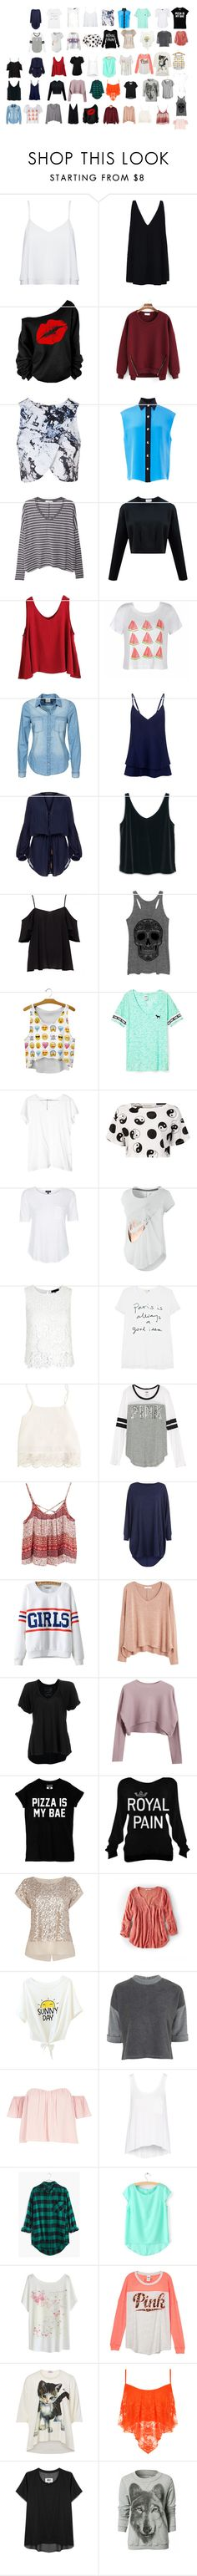 """shopping top list"" by hopecutyorange ❤ liked on Polyvore featuring Alice + Olivia, STELLA McCARTNEY, Topshop, FAUSTO PUGLISI, MANGO, WithChic, Ally Fashion, Vero Moda, Markus Lupfer and ViX"